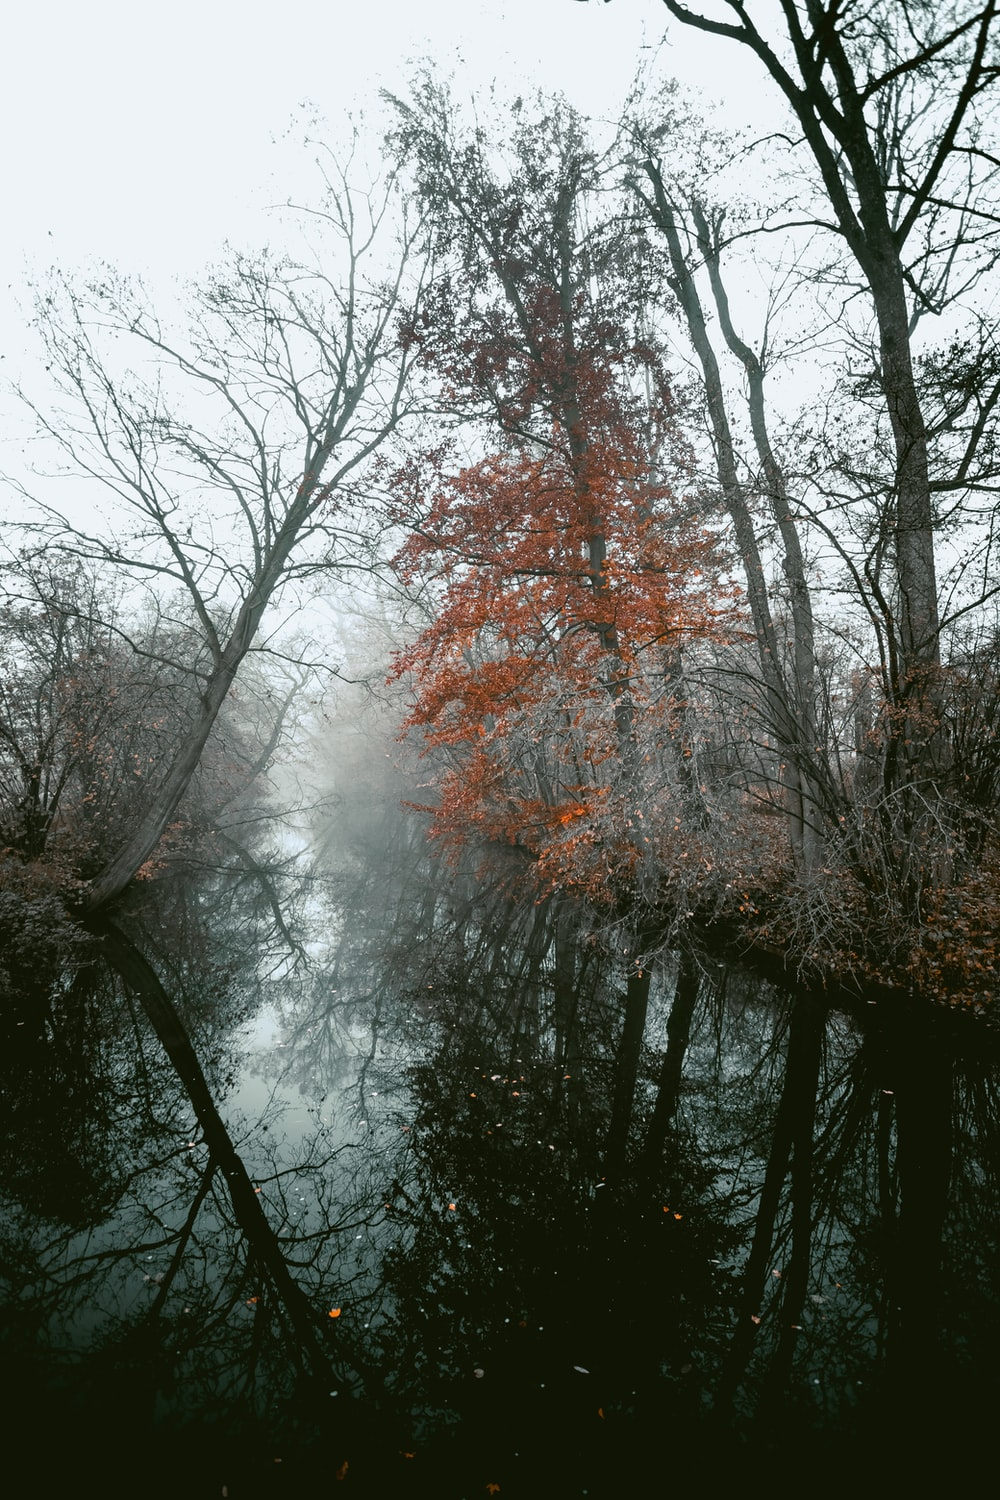 reflection of trees on body of water